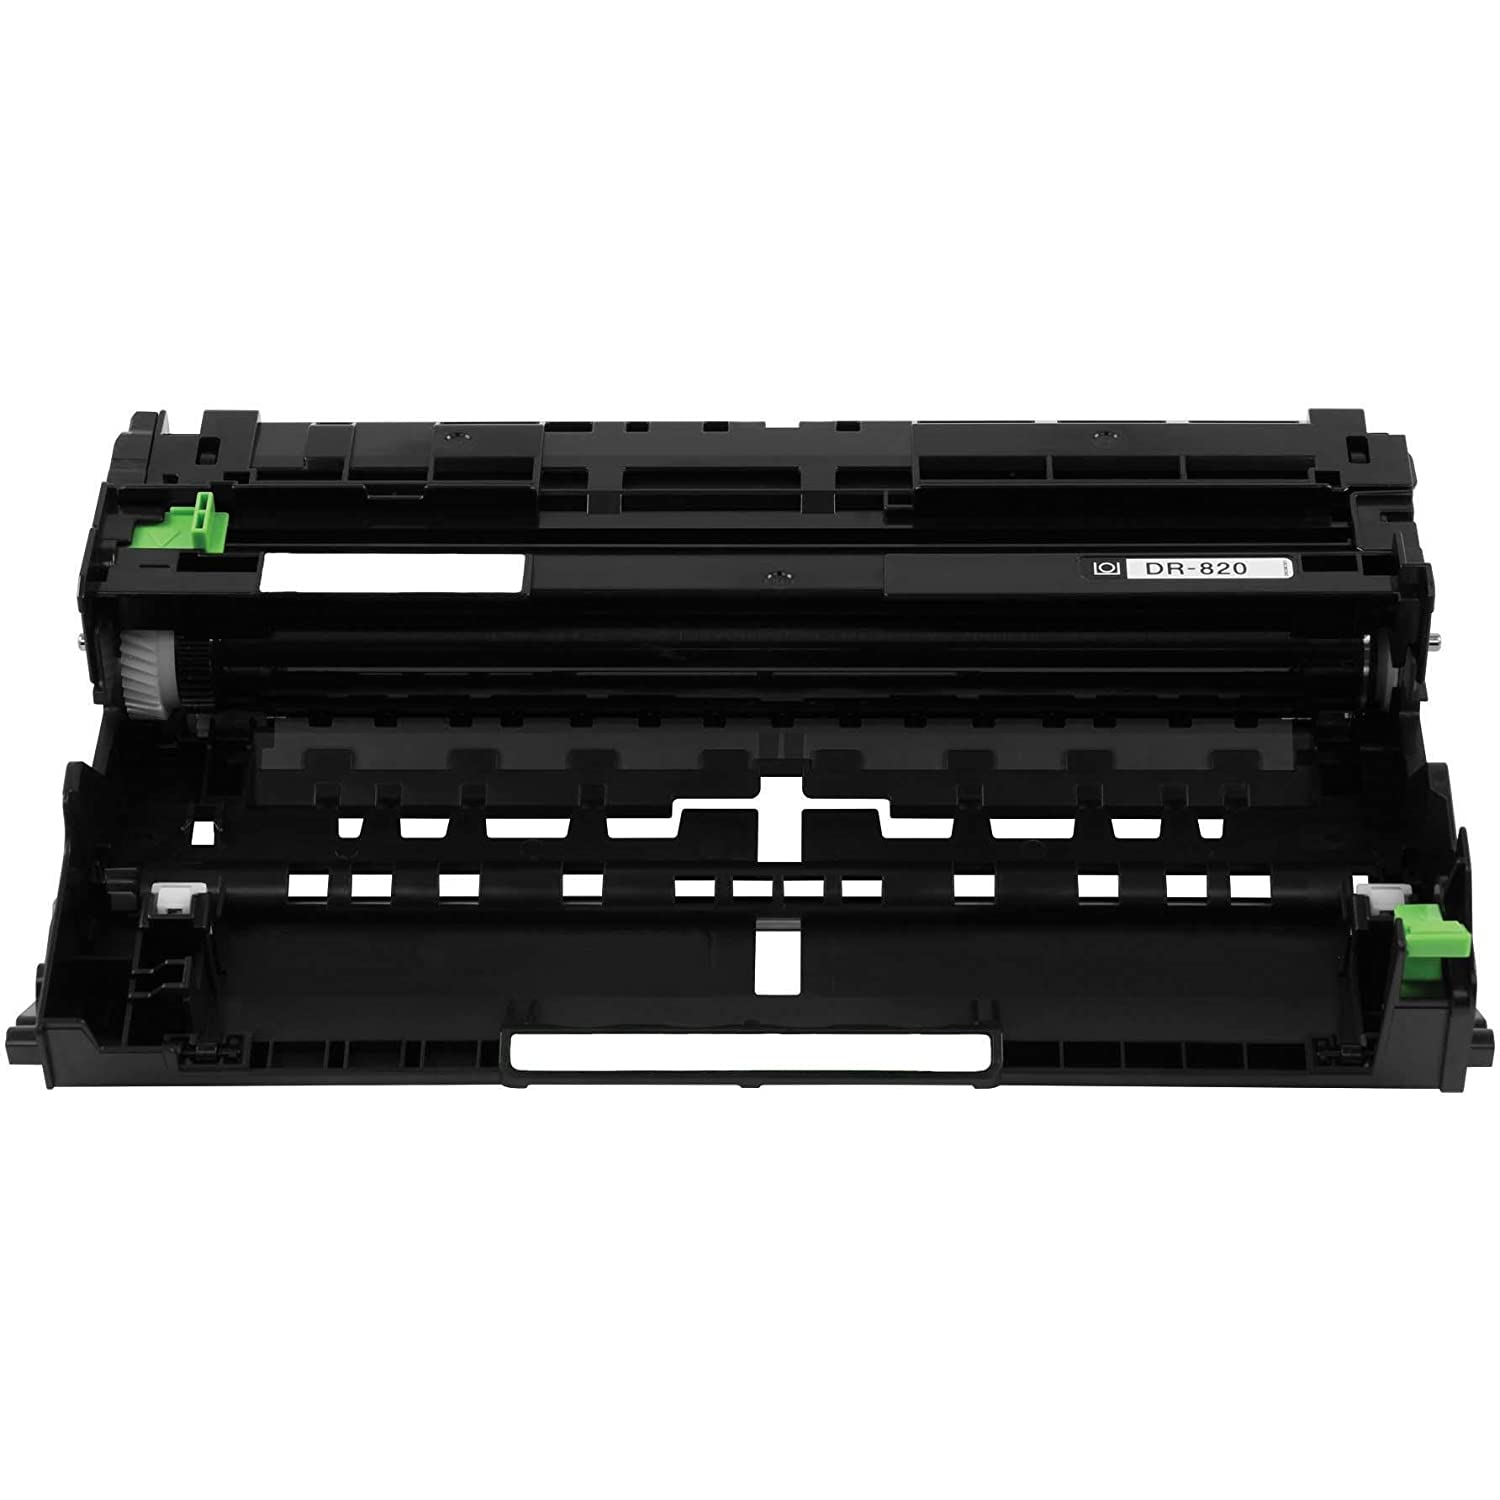 2 Pack Save on Many Compatible Brother TN850 TN-850 High Yield of TN820 TN-820 (8, 000 Pages) Black BK Toner Cartridge for Brother DCP-L5500DN DCP-L5600DN DCP-L5650DN HL-L5000D HL-L5100DN HL-L5200DW HL-L5200DWT HL-L6200DW HL-L6200DWT HL-L6250DW HL-L6300DW